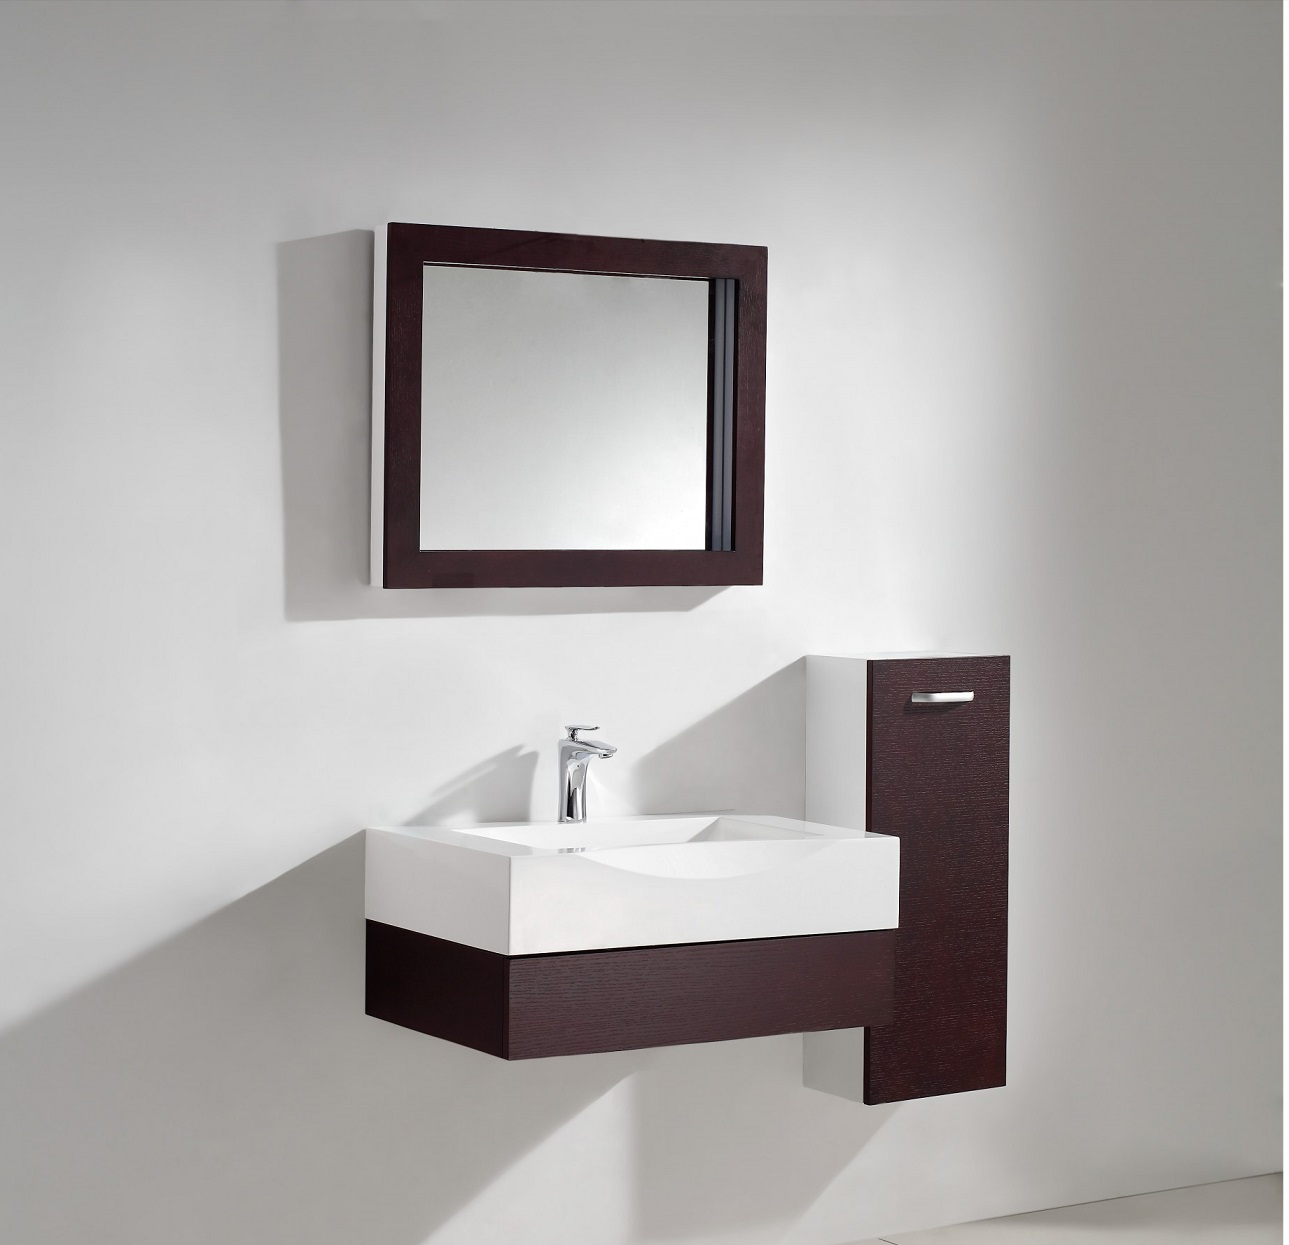 Aura Modern Bathroom Vanity Set with Side Cabinet and LED Mirror 29.5